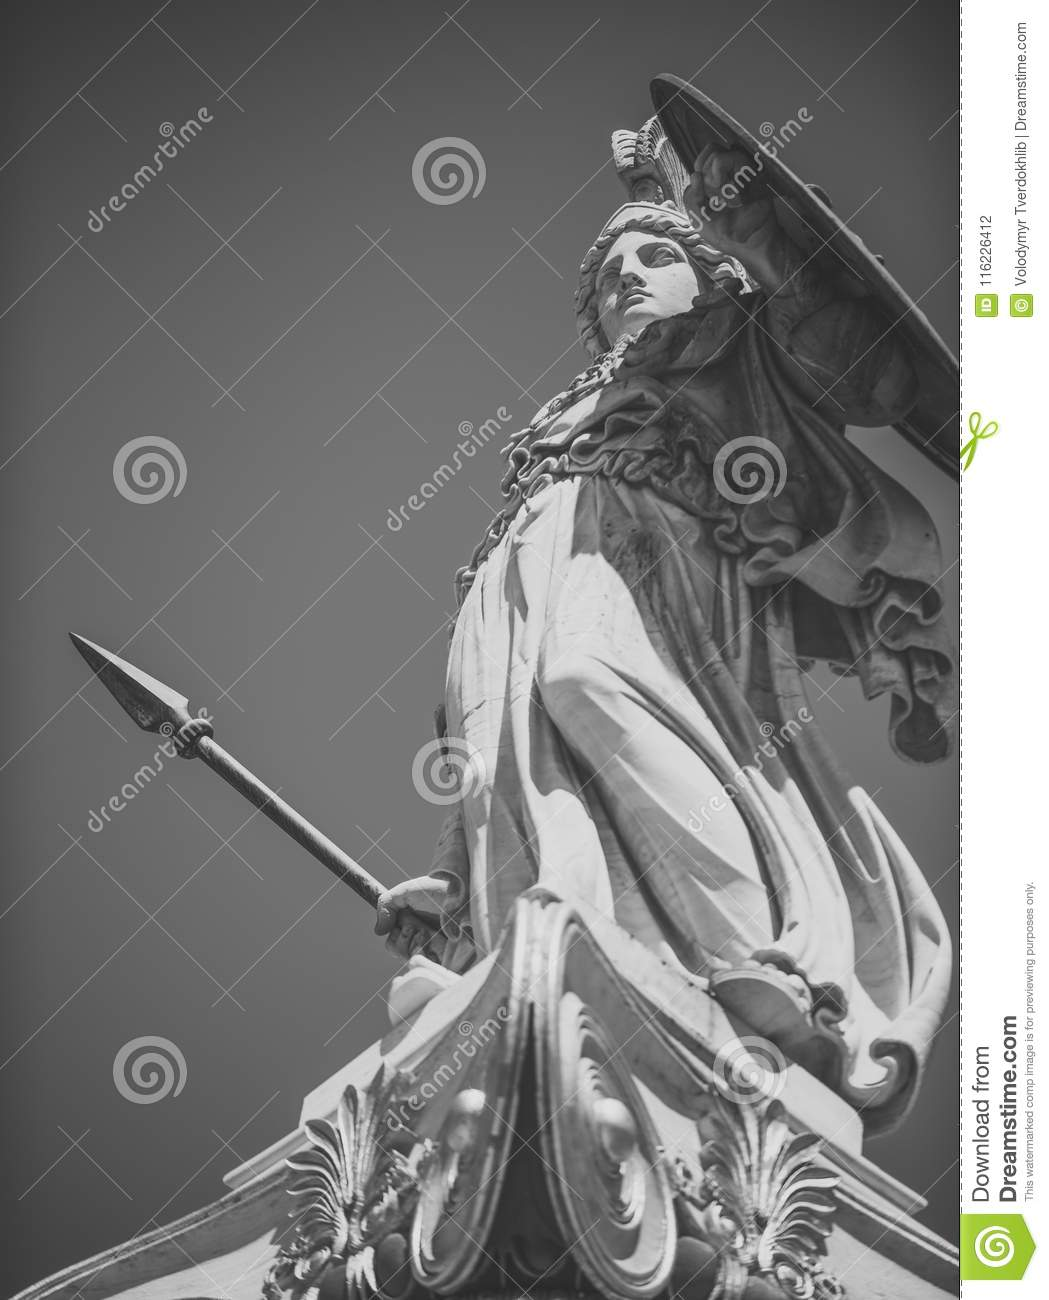 Statue, Sculpture Of Greek Warrior In Helmet With Spear And Shield